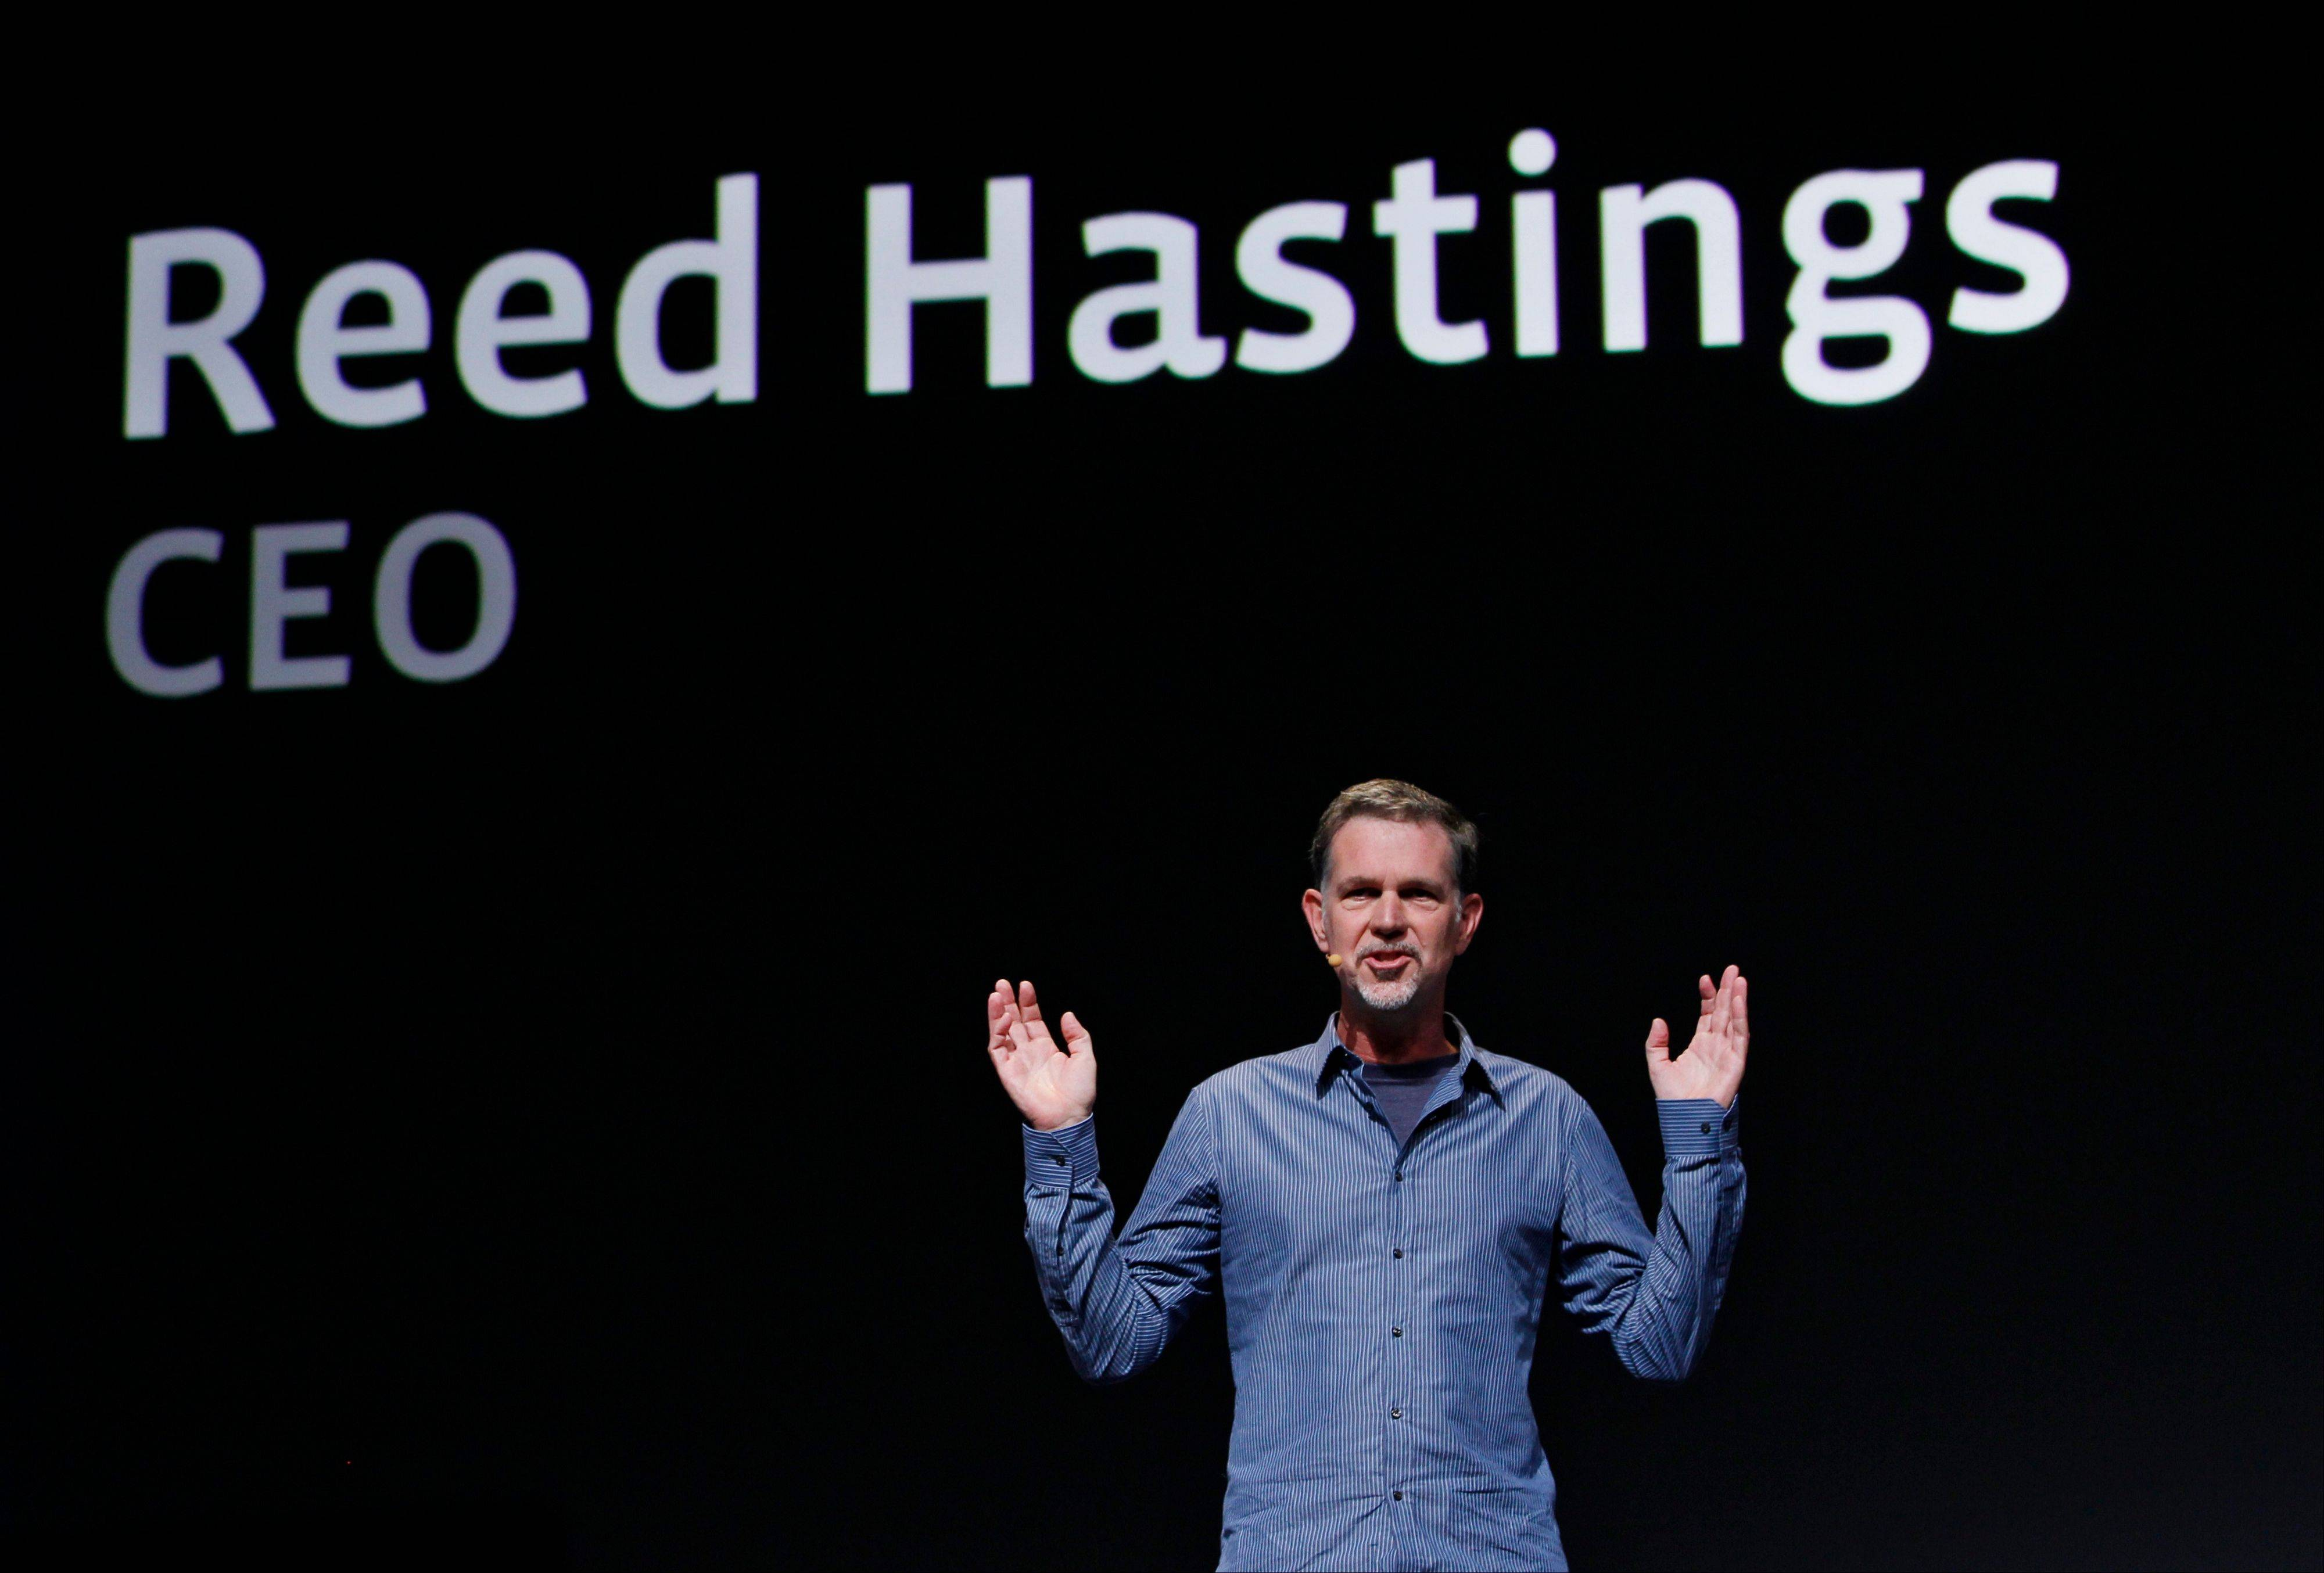 Netflix CEO Reed Hastings has led a resurgence of investor interest in Netflix, whose stock is the best performing among Standard & Poor�s 500 Index in 2013.